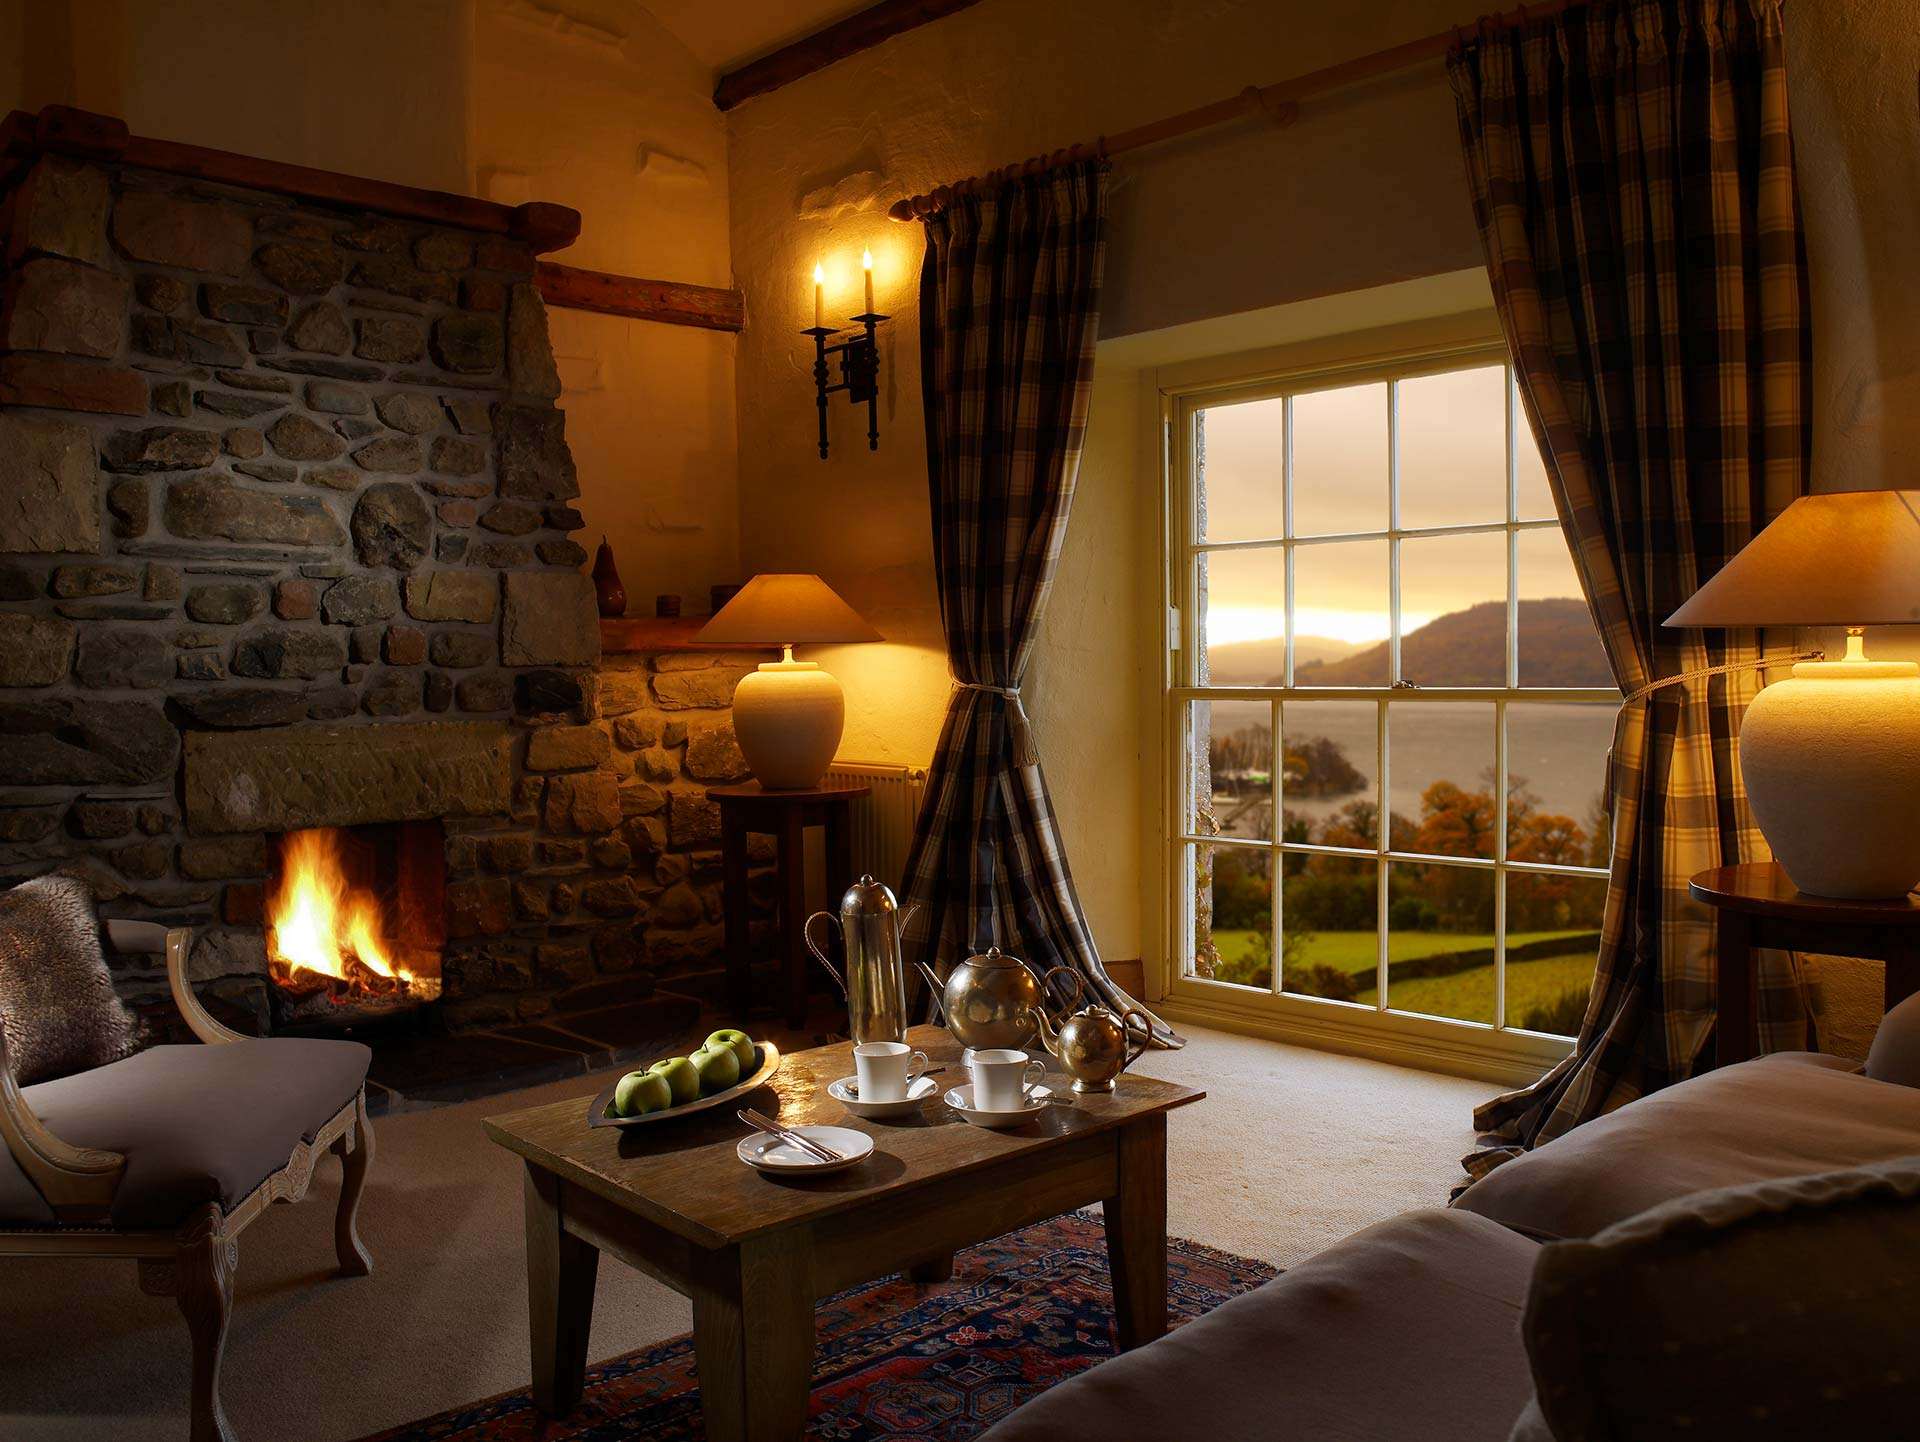 Suites | The Samling Luxury Country Hotel in the Lake District